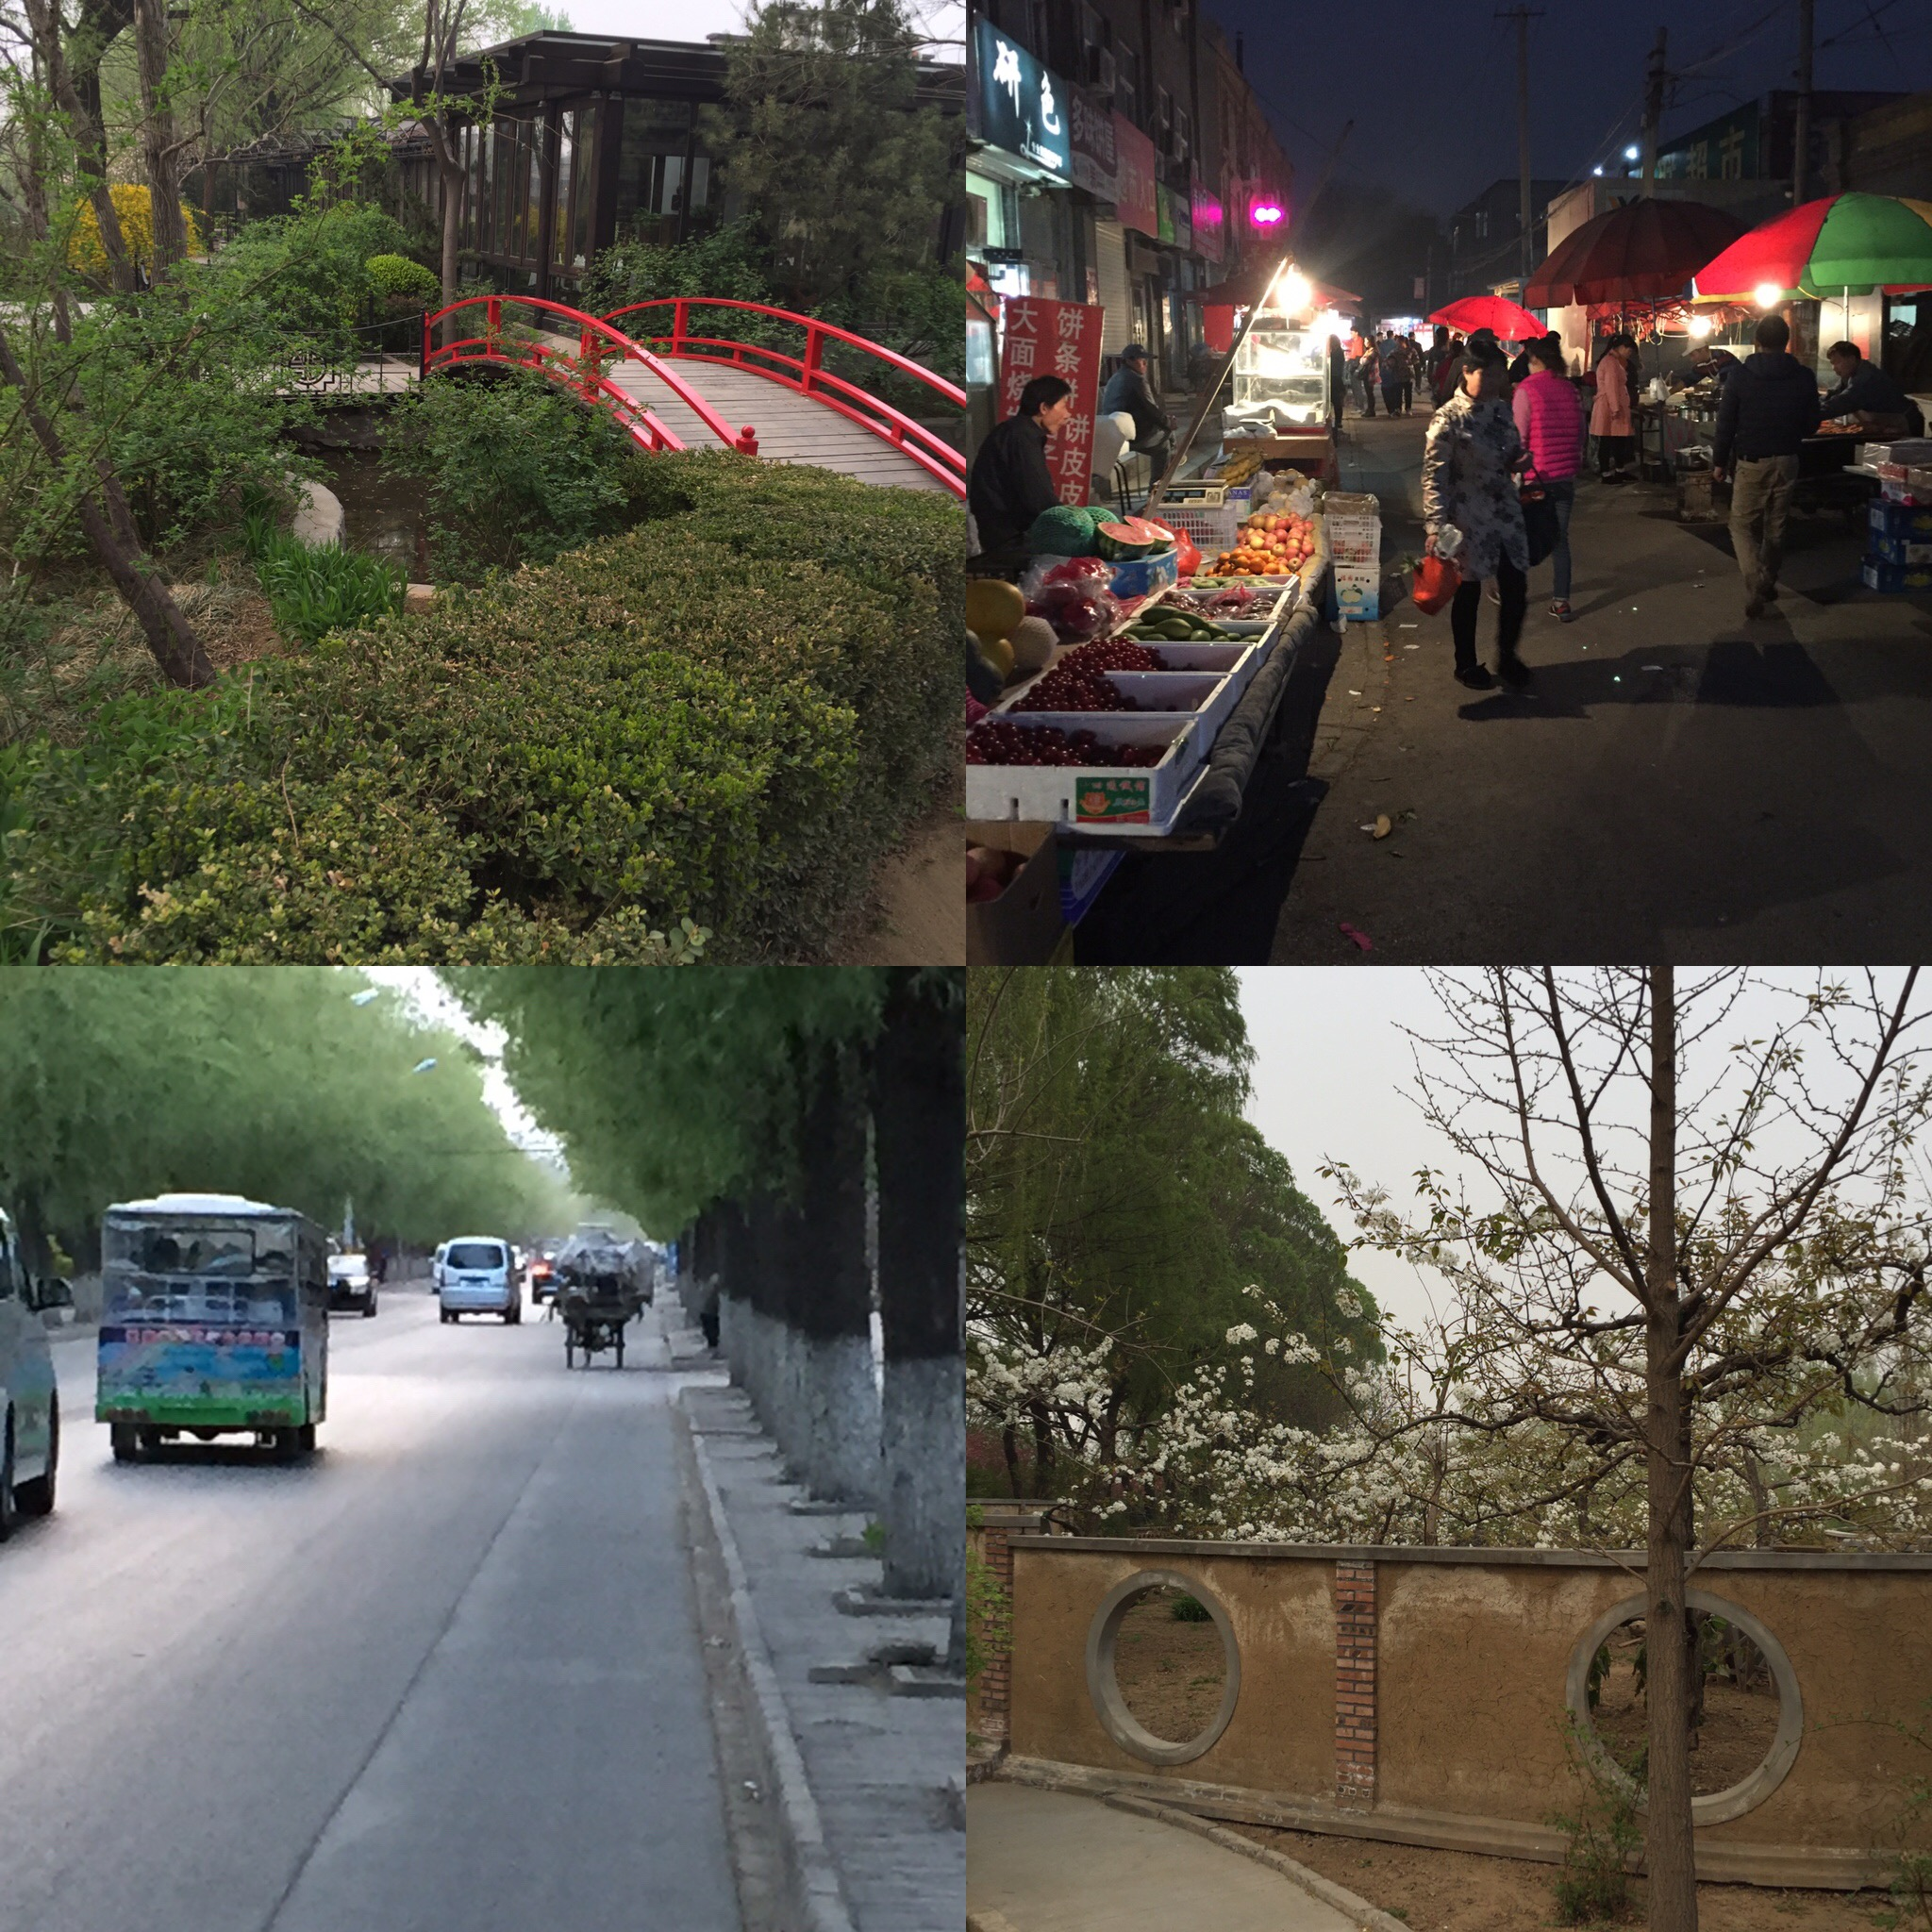 1b-local-hegezhuang-beijing-april-2016